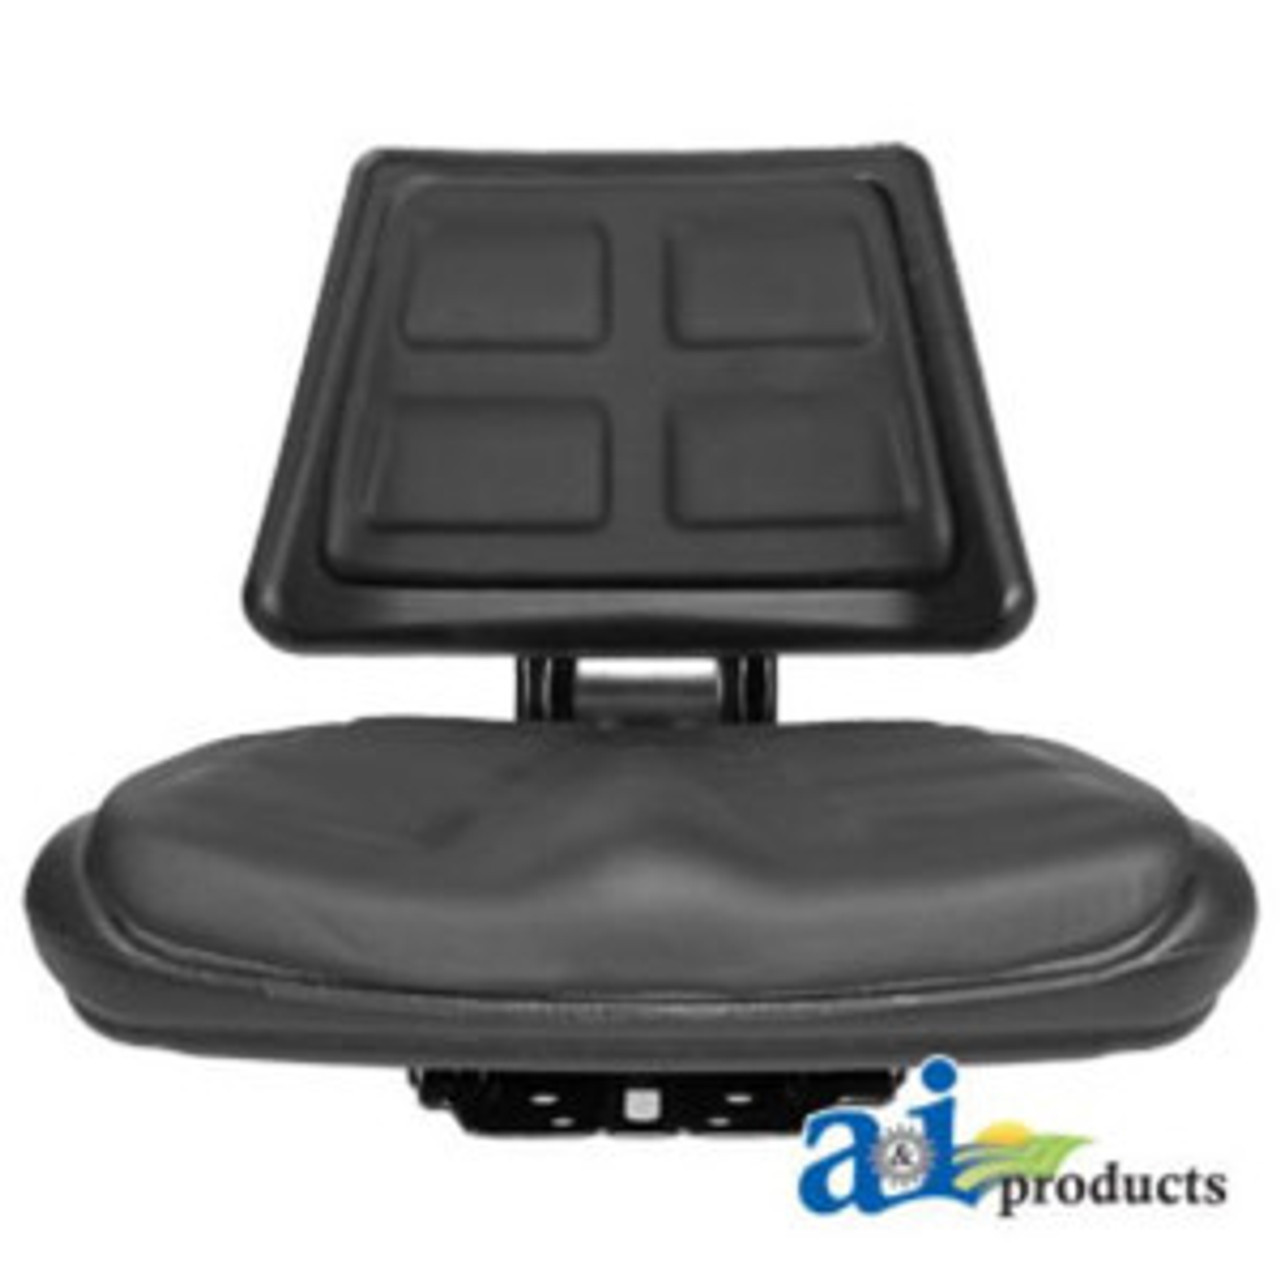 T110BL Black Universal Tractor Seat with Trapezoid Back